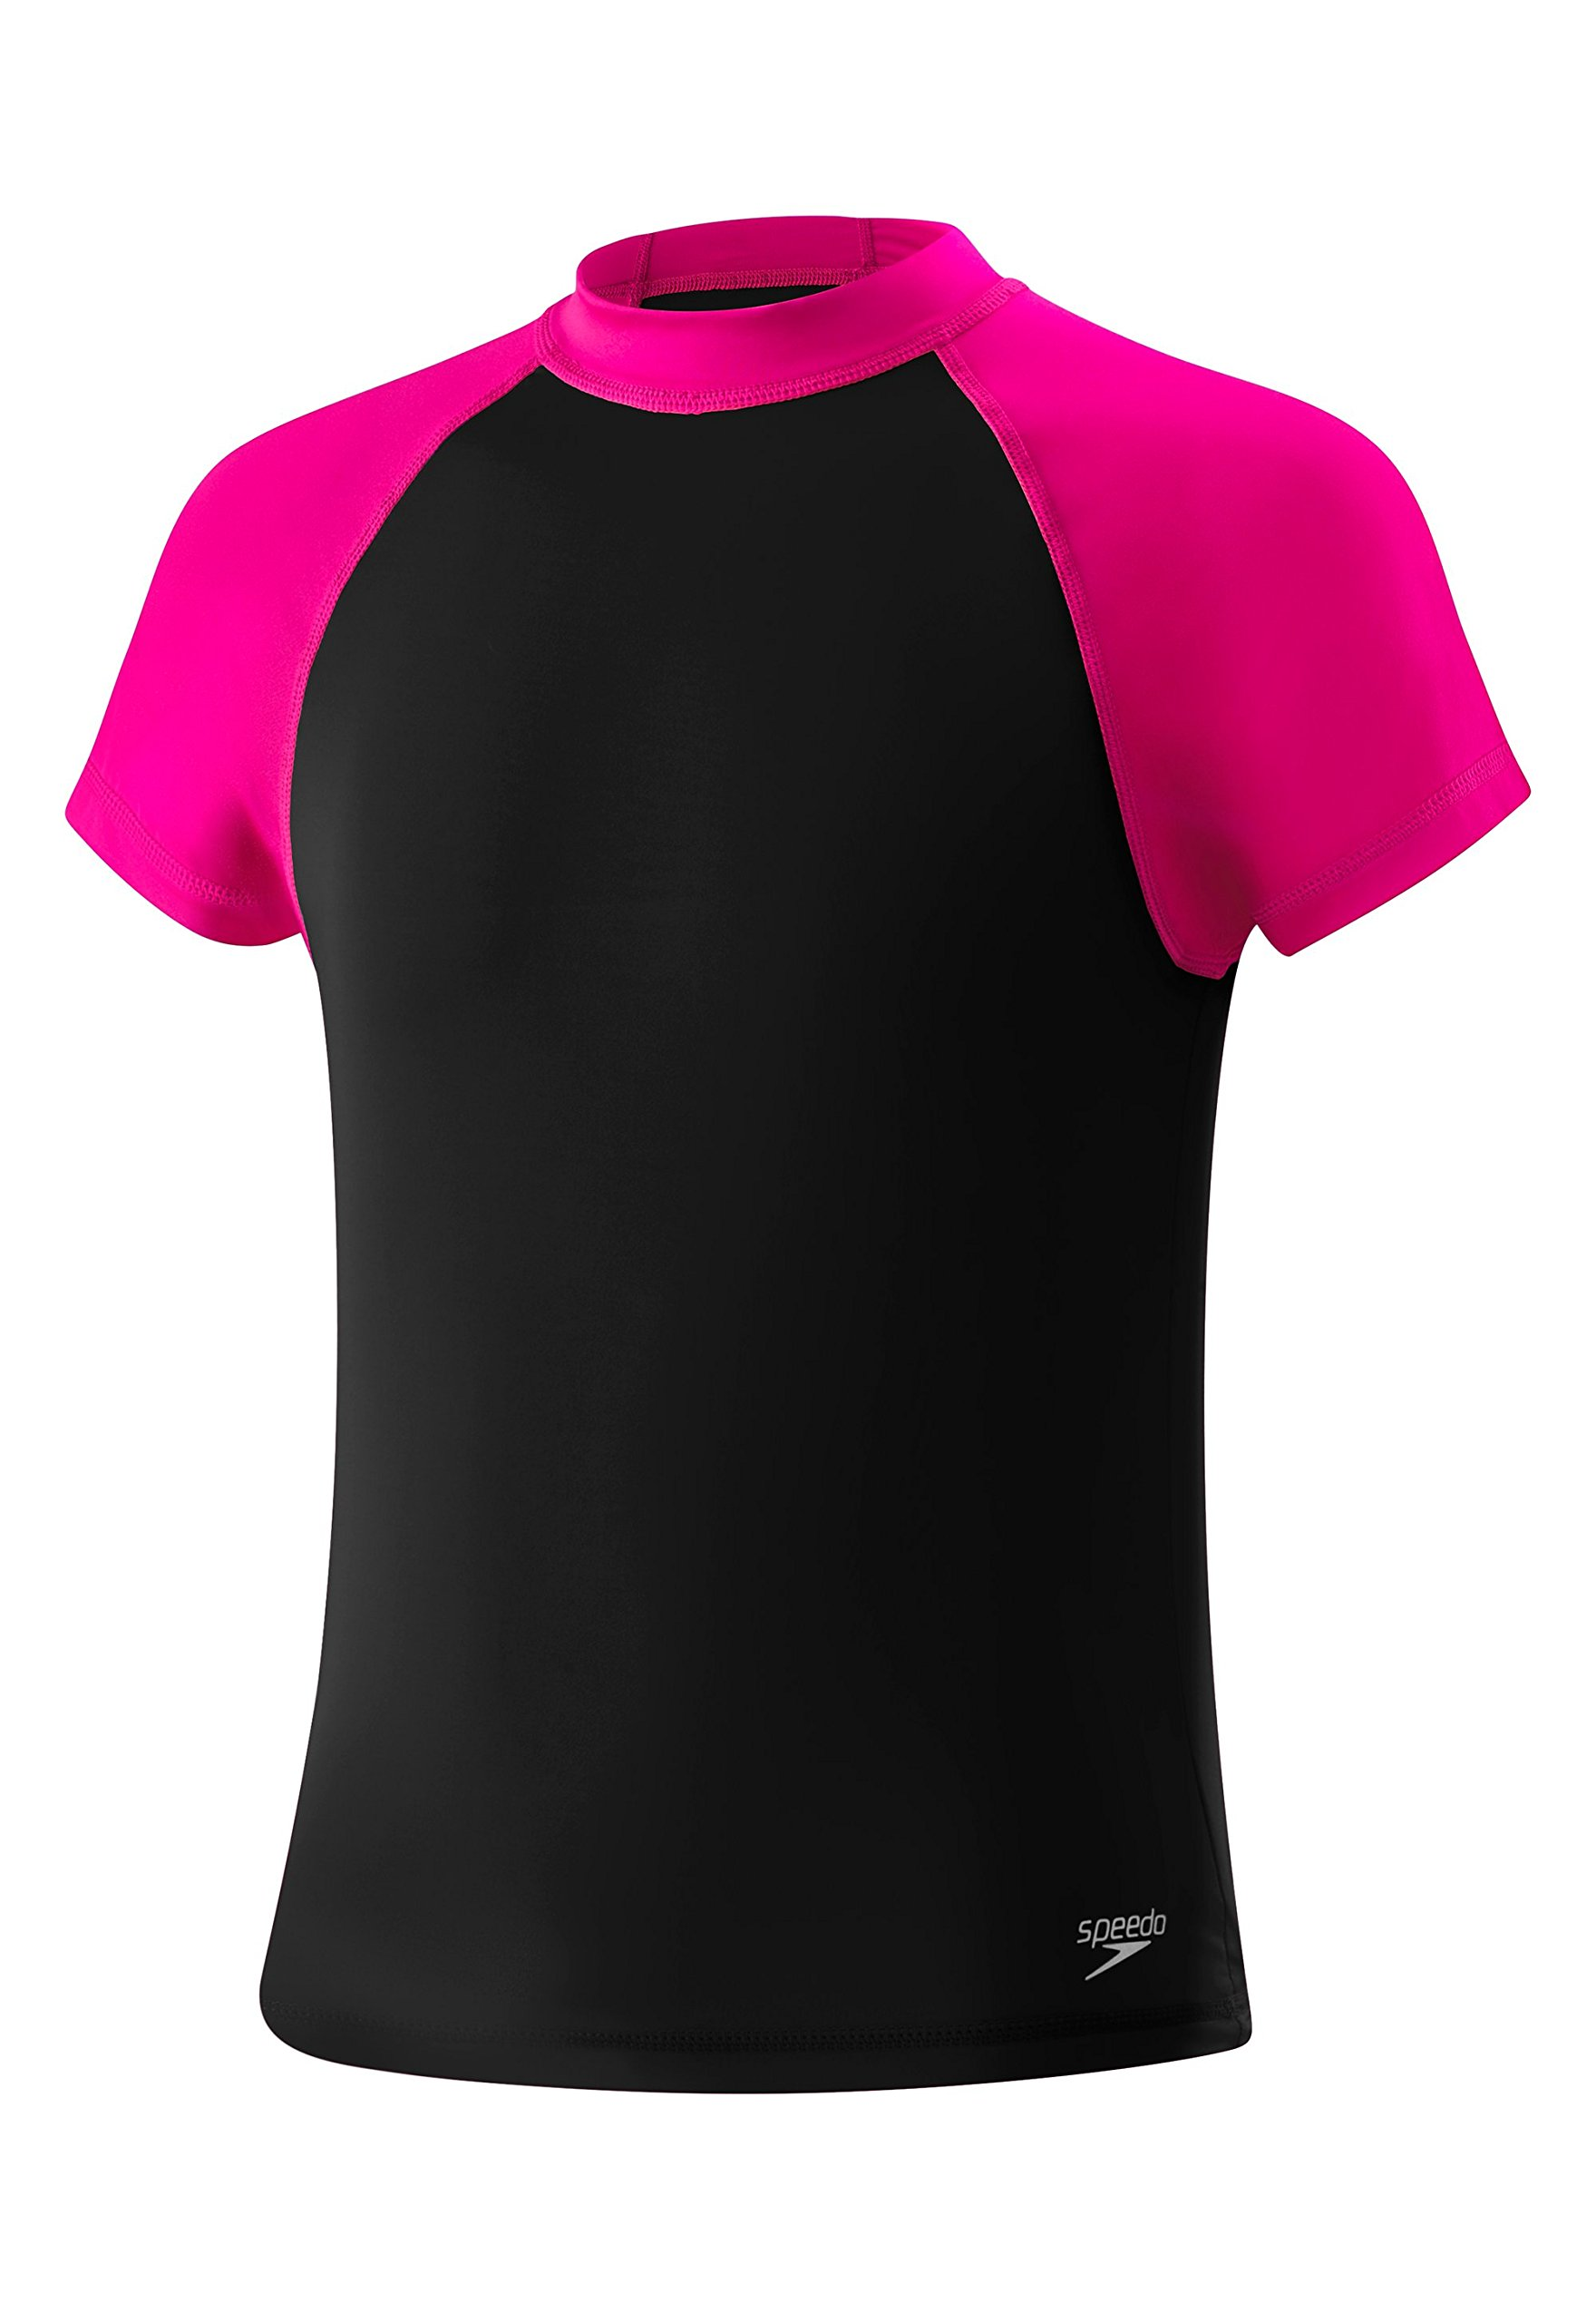 Speedo Girls Colorblock Short Sleeve Rash Guard Swim T-Shirt, New Black, Large